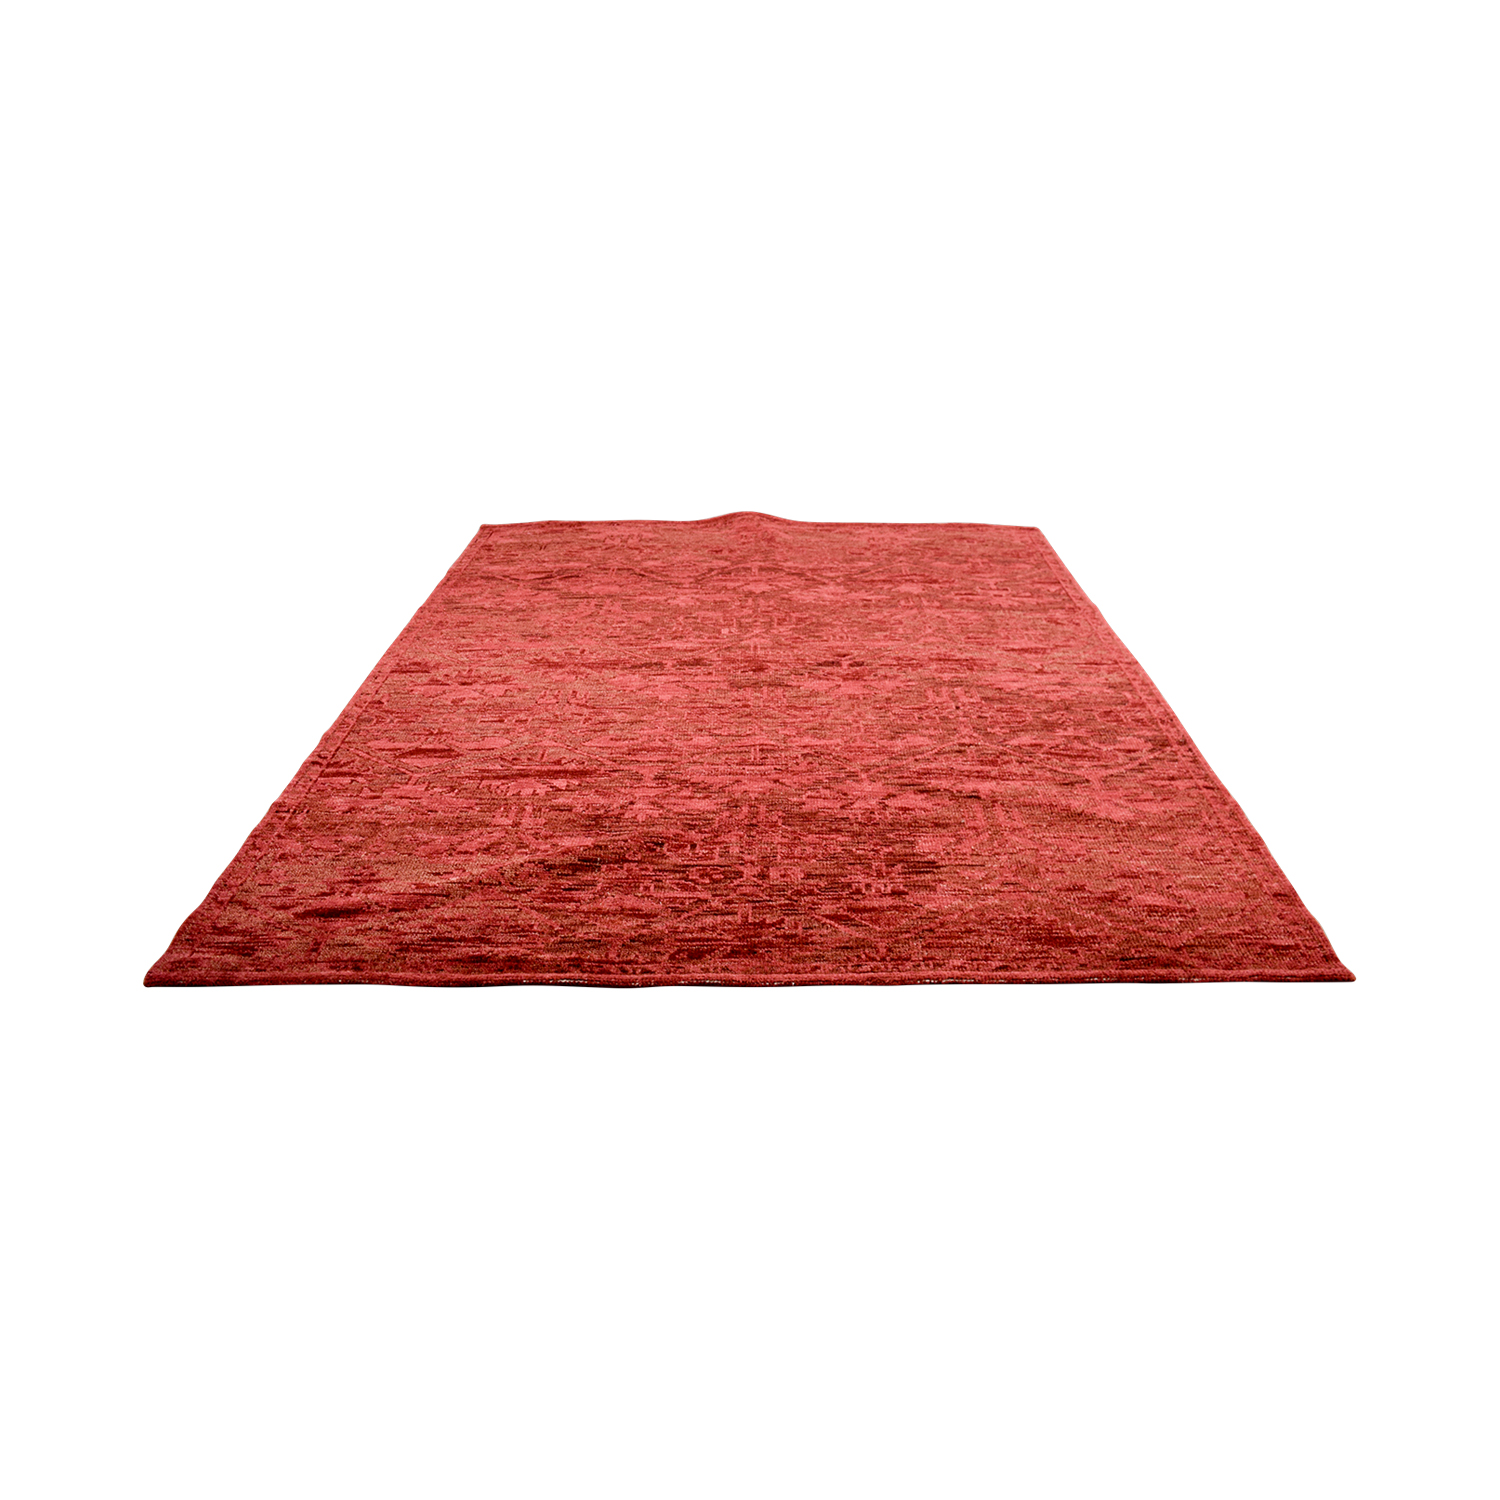 Obeetee Hand Knotted Amira Paprika Wool Rug Obeetee